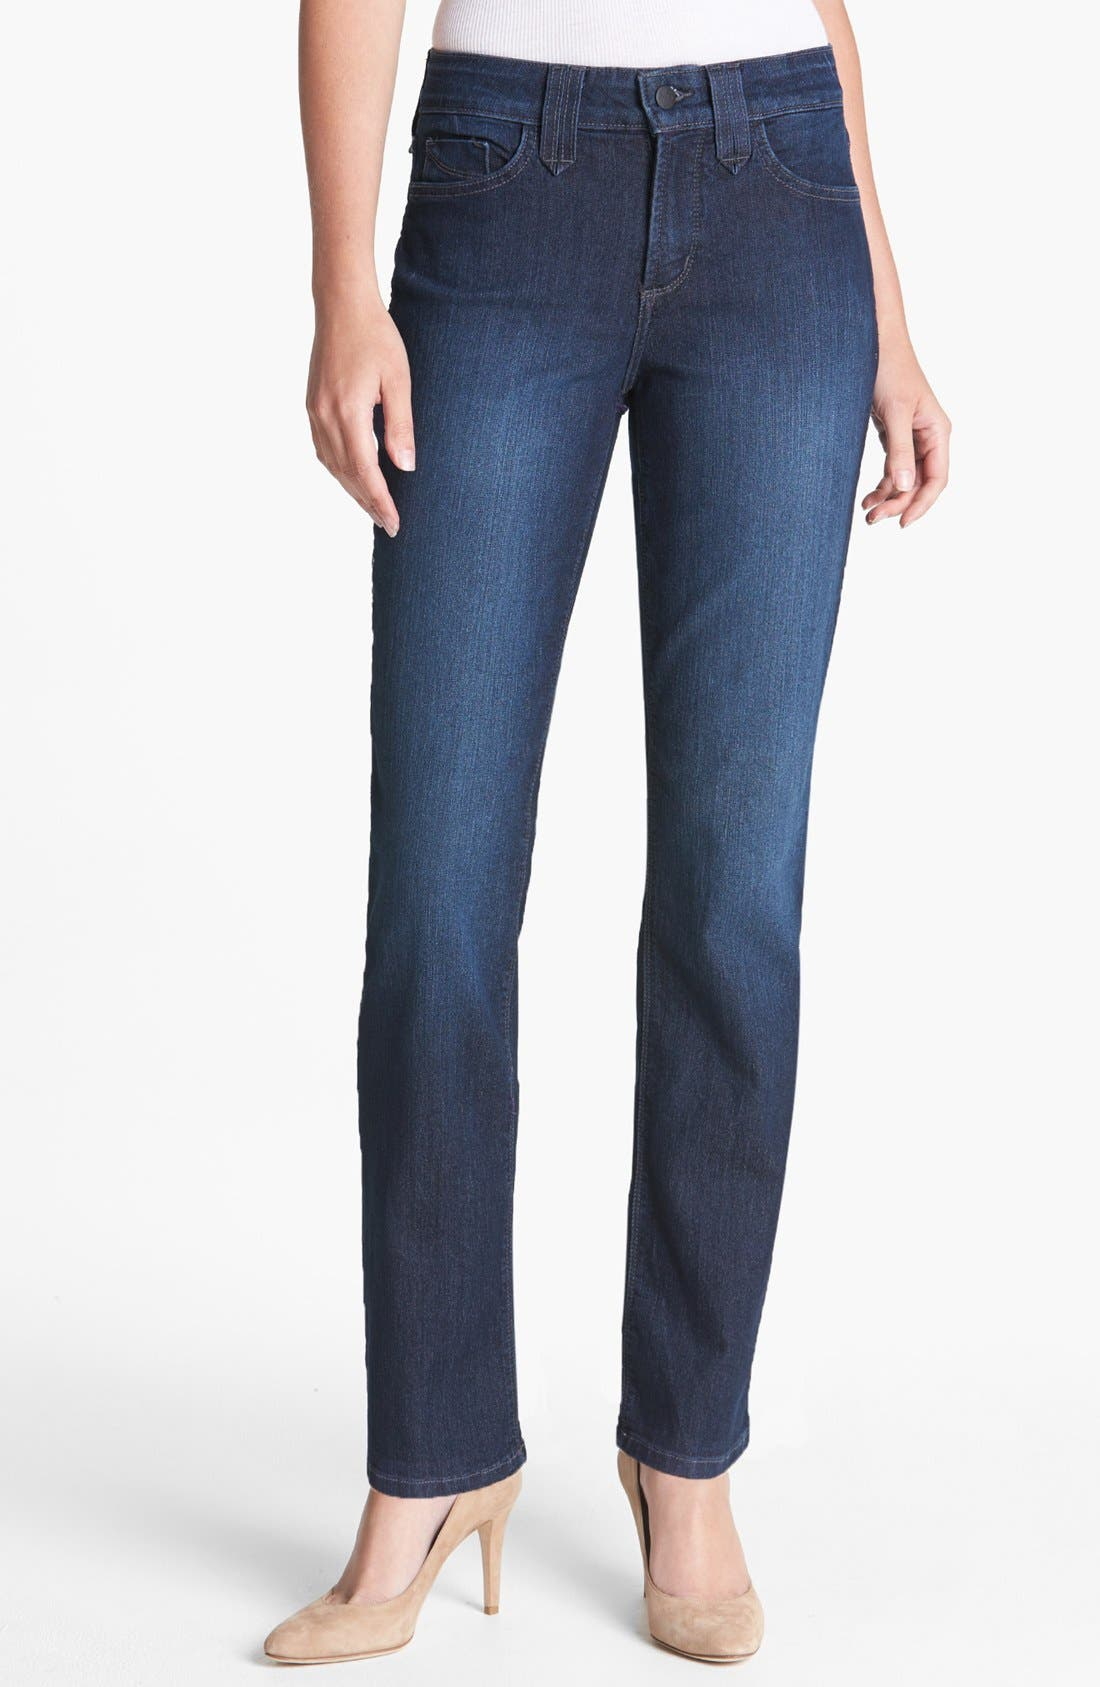 Alternate Image 1 Selected - NYDJ 'Hayden' Stretch Straight Leg Jeans (Burbank) (Short)